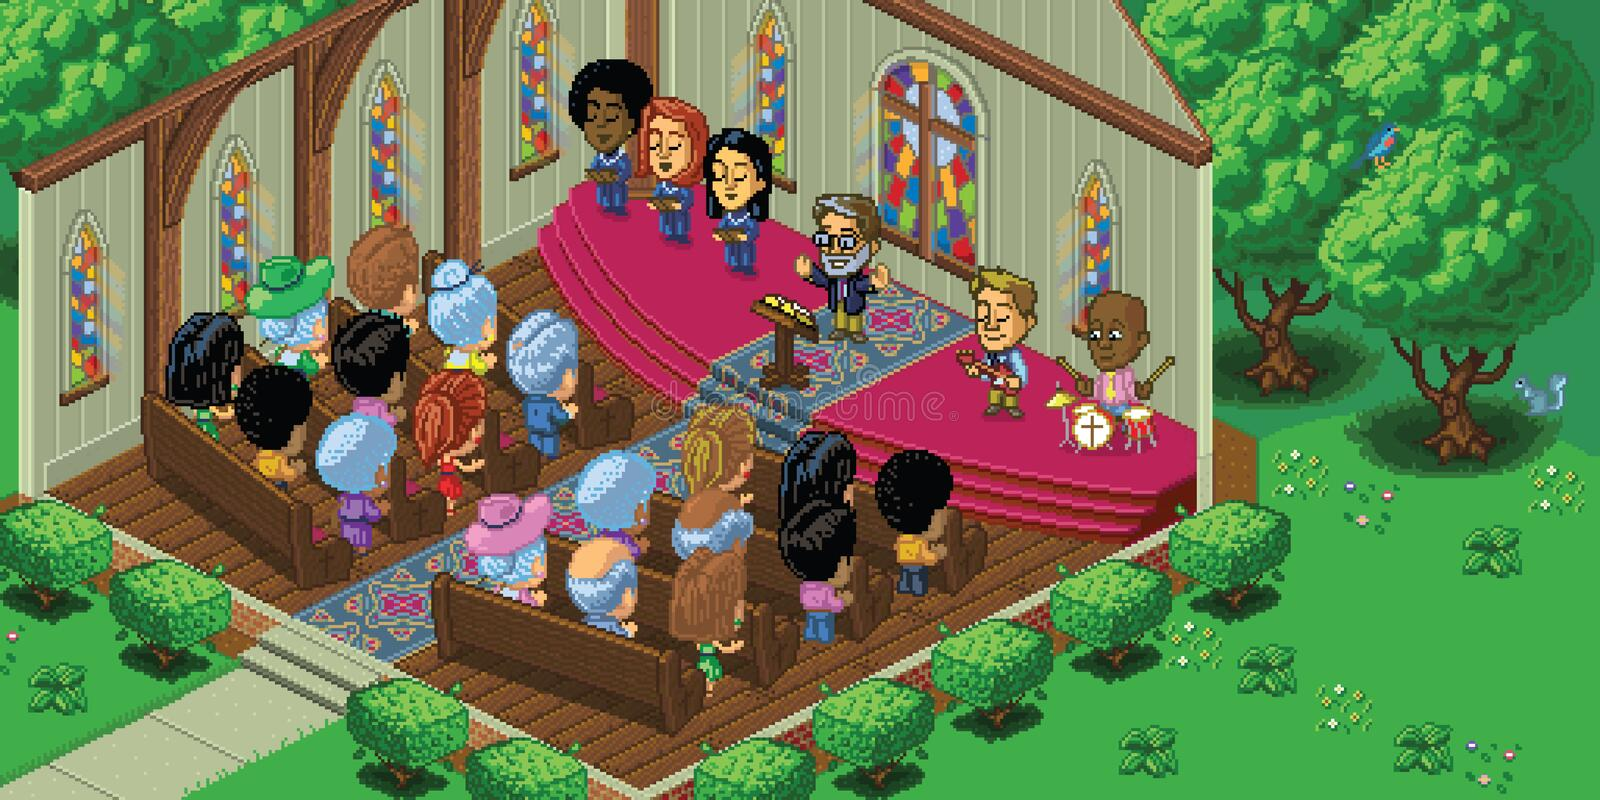 Pixel Art Church Service de vecteur illustration libre de droits